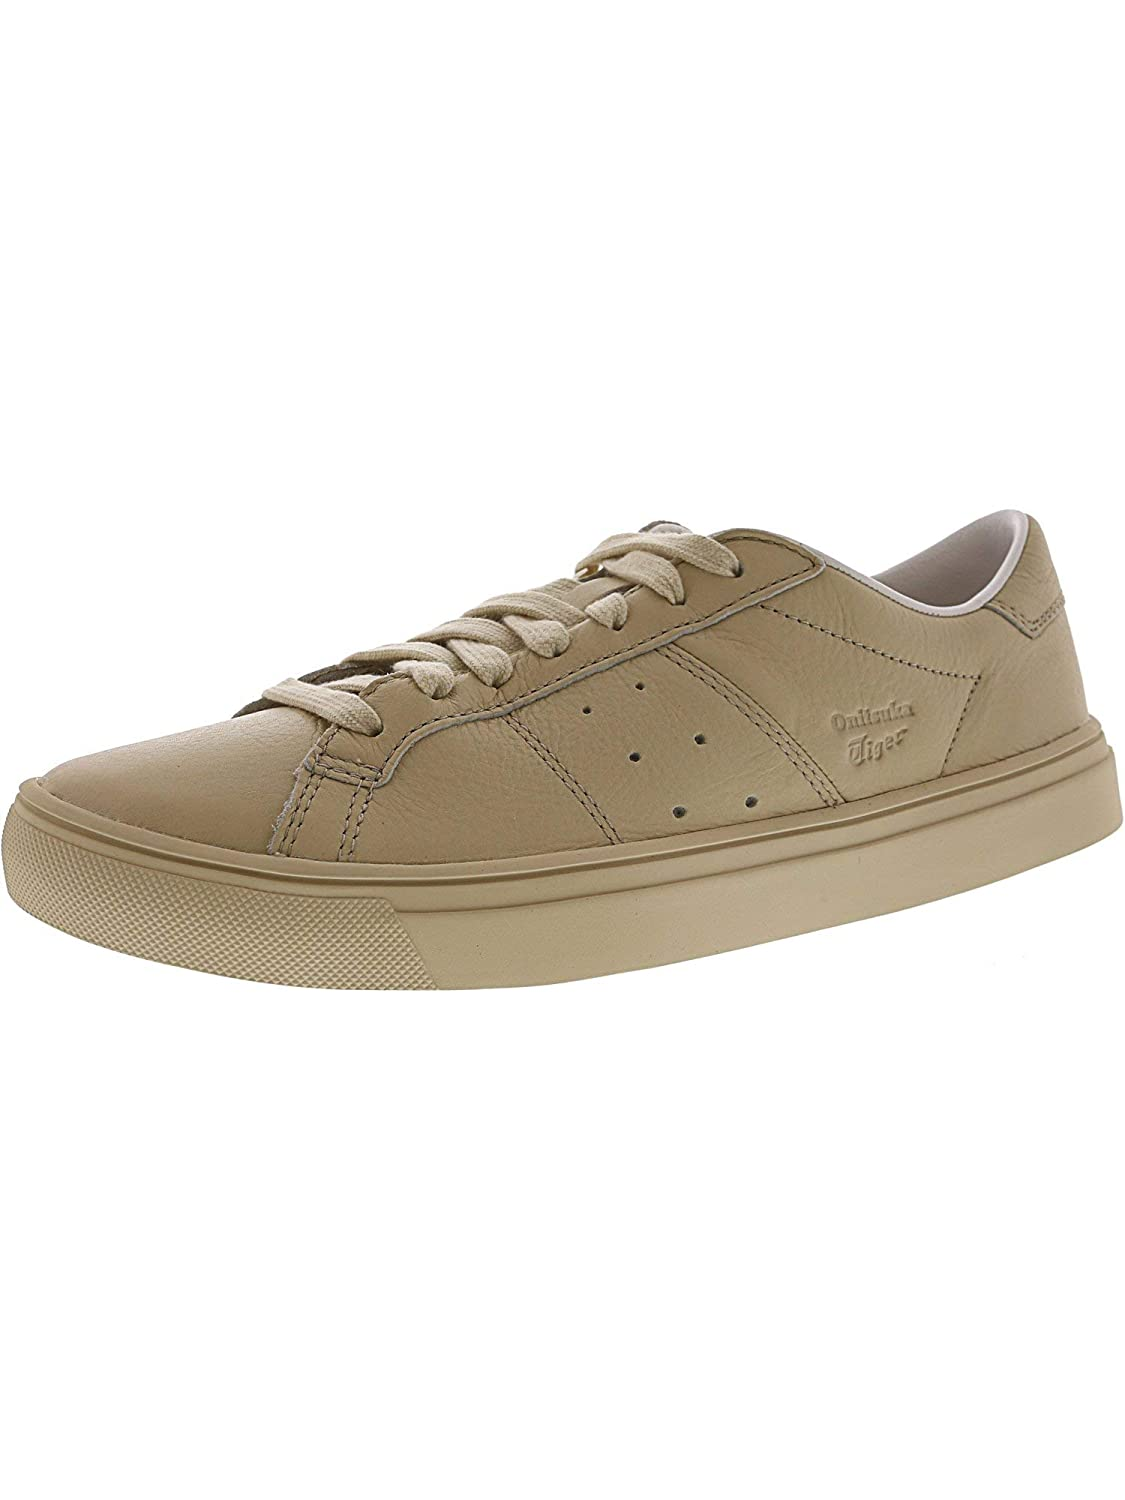 factory price 203a7 17395 Amazon.com: Onitsuka Tiger Lawnship 2.0 Birch/Ankle-High ...